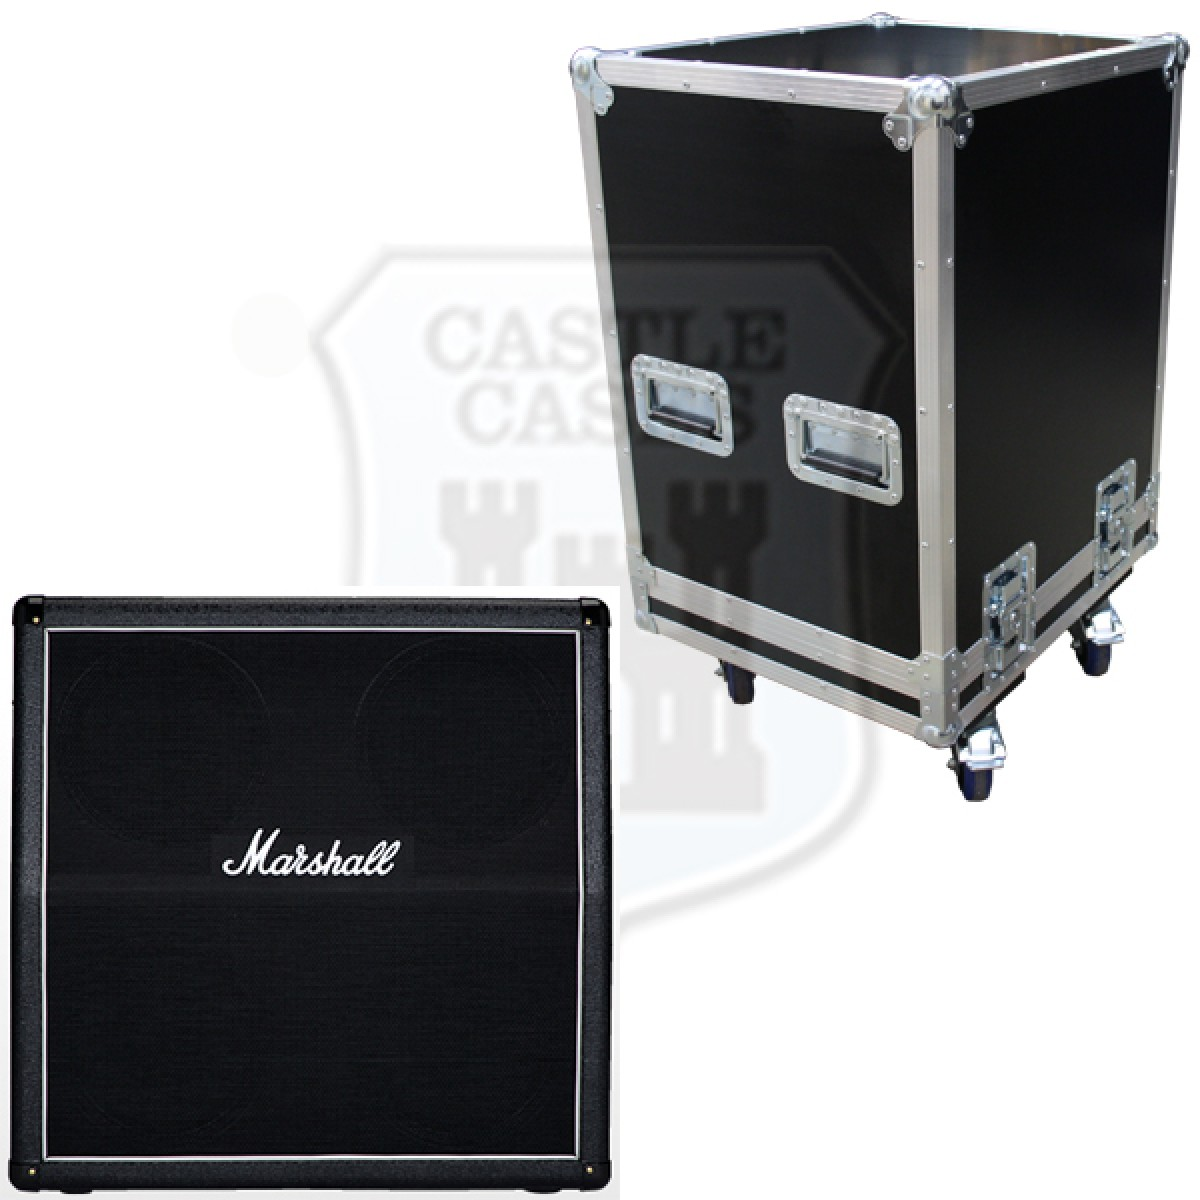 Marshall MX412A Flightcase